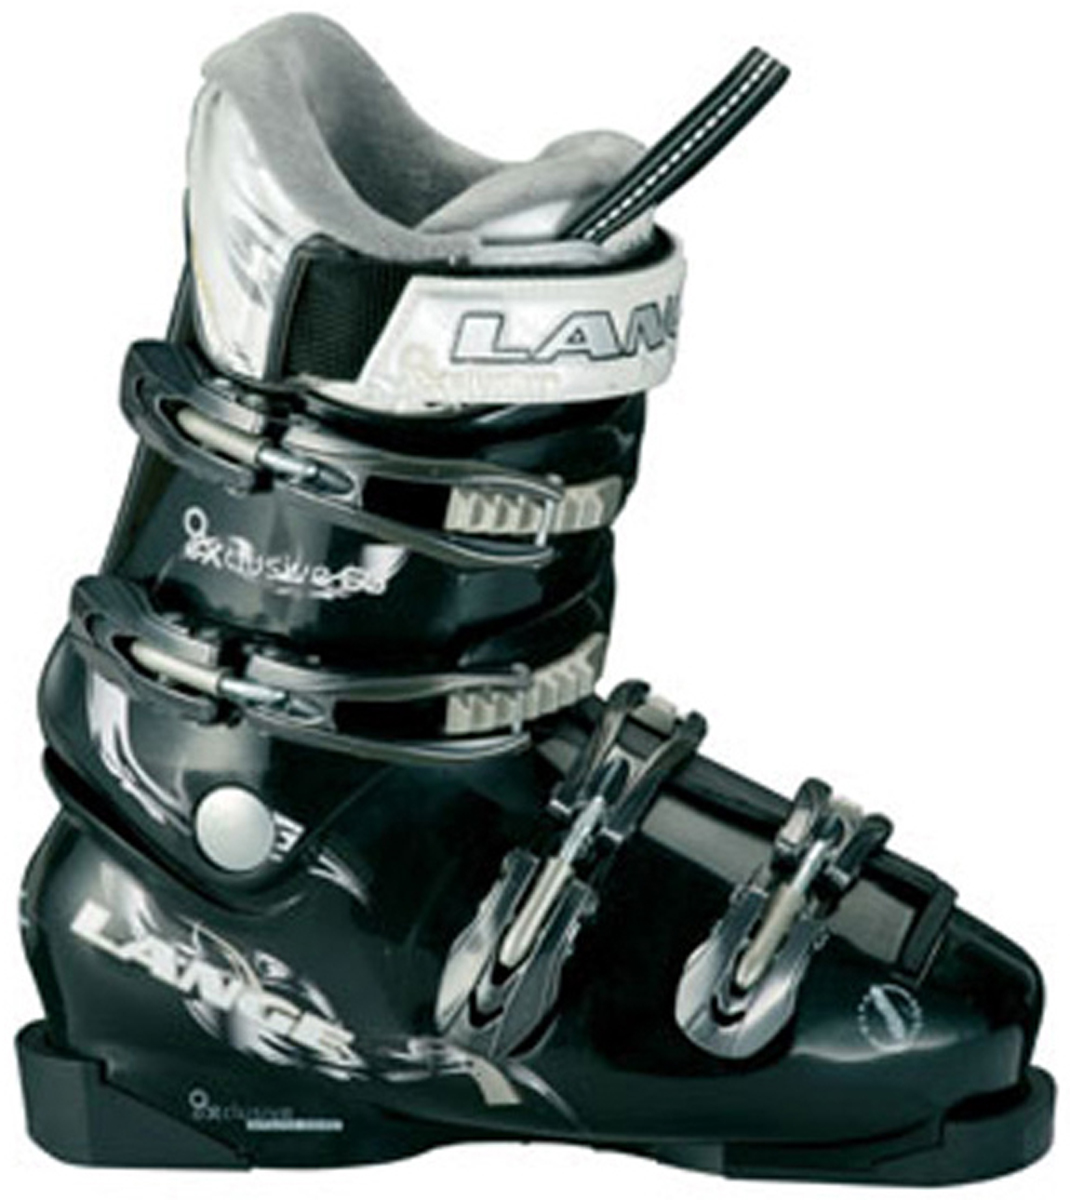 Ski Every skier knows that boots are extremely important. Without a good pair you could have sore feet by the end of the day, or even worse, one of your skis could come detached and lead to a fall and injury. Do not settle for anything but the best. Consider a pair of Lange Exclusive 60 Ski Boots for the best experience on the mountain no matter if it is your first time on the slopes or you are a seasoned veteran. You owe it to your feet.Key Features of the Lange Exclusive 60 Ski Boots: 99mm Last Flex: 60 - $148.95